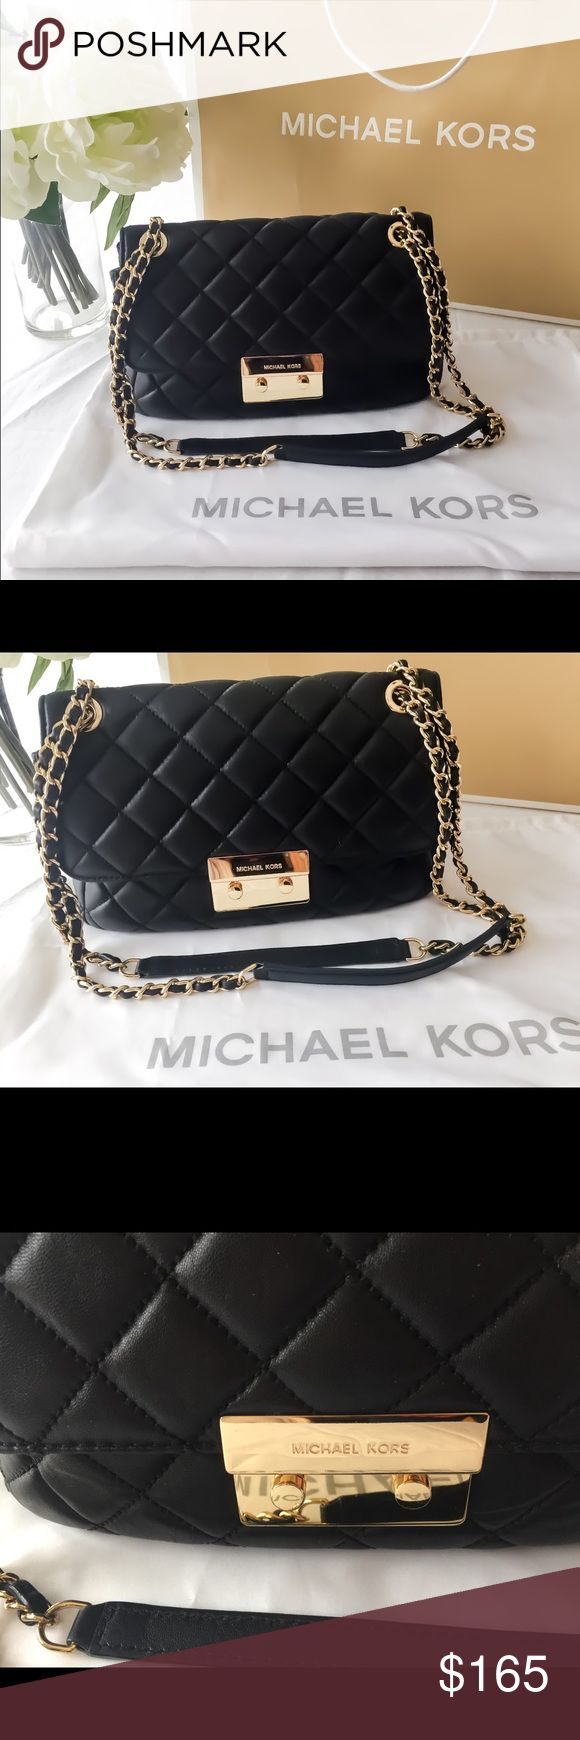 Michael Kors Black Quilted Sloan Leather Handbag! Michael Kors Black Quilted Sloan Leather Handbag! In great condition with no flaws inside the bag, there are a few minor scratches on front clasp, but not too noticeable. Rare! Bought at the Flagship store Rockefeller Plaza in NYC in 2015.  Looks just like a Chanel 2.5 quilted bag! Adjustable strap. Can be a crossbody or double arm bag. Michael Kors Bags Shoulder Bags